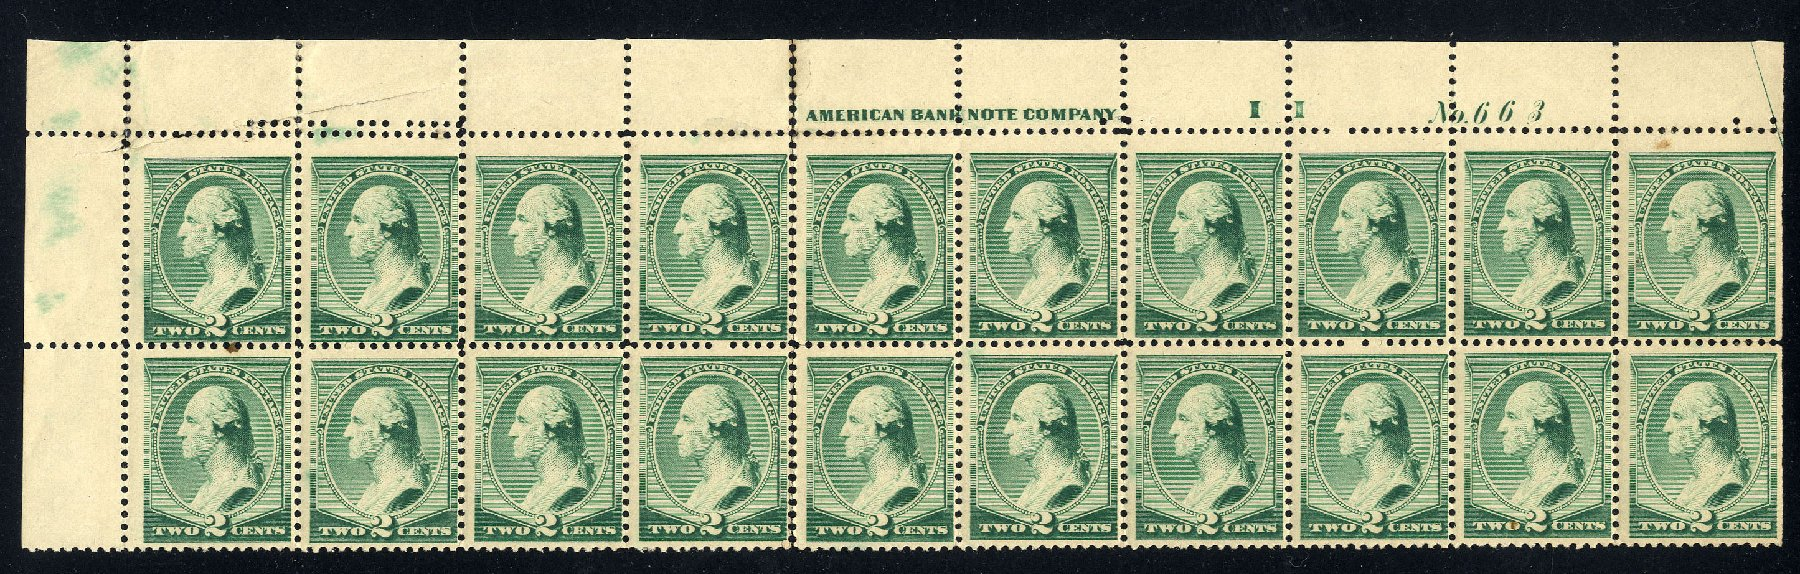 Price of US Stamps Scott 213 - 1883 2c Washington. Cherrystone Auctions, Nov 2013, Sale 201311, Lot 35